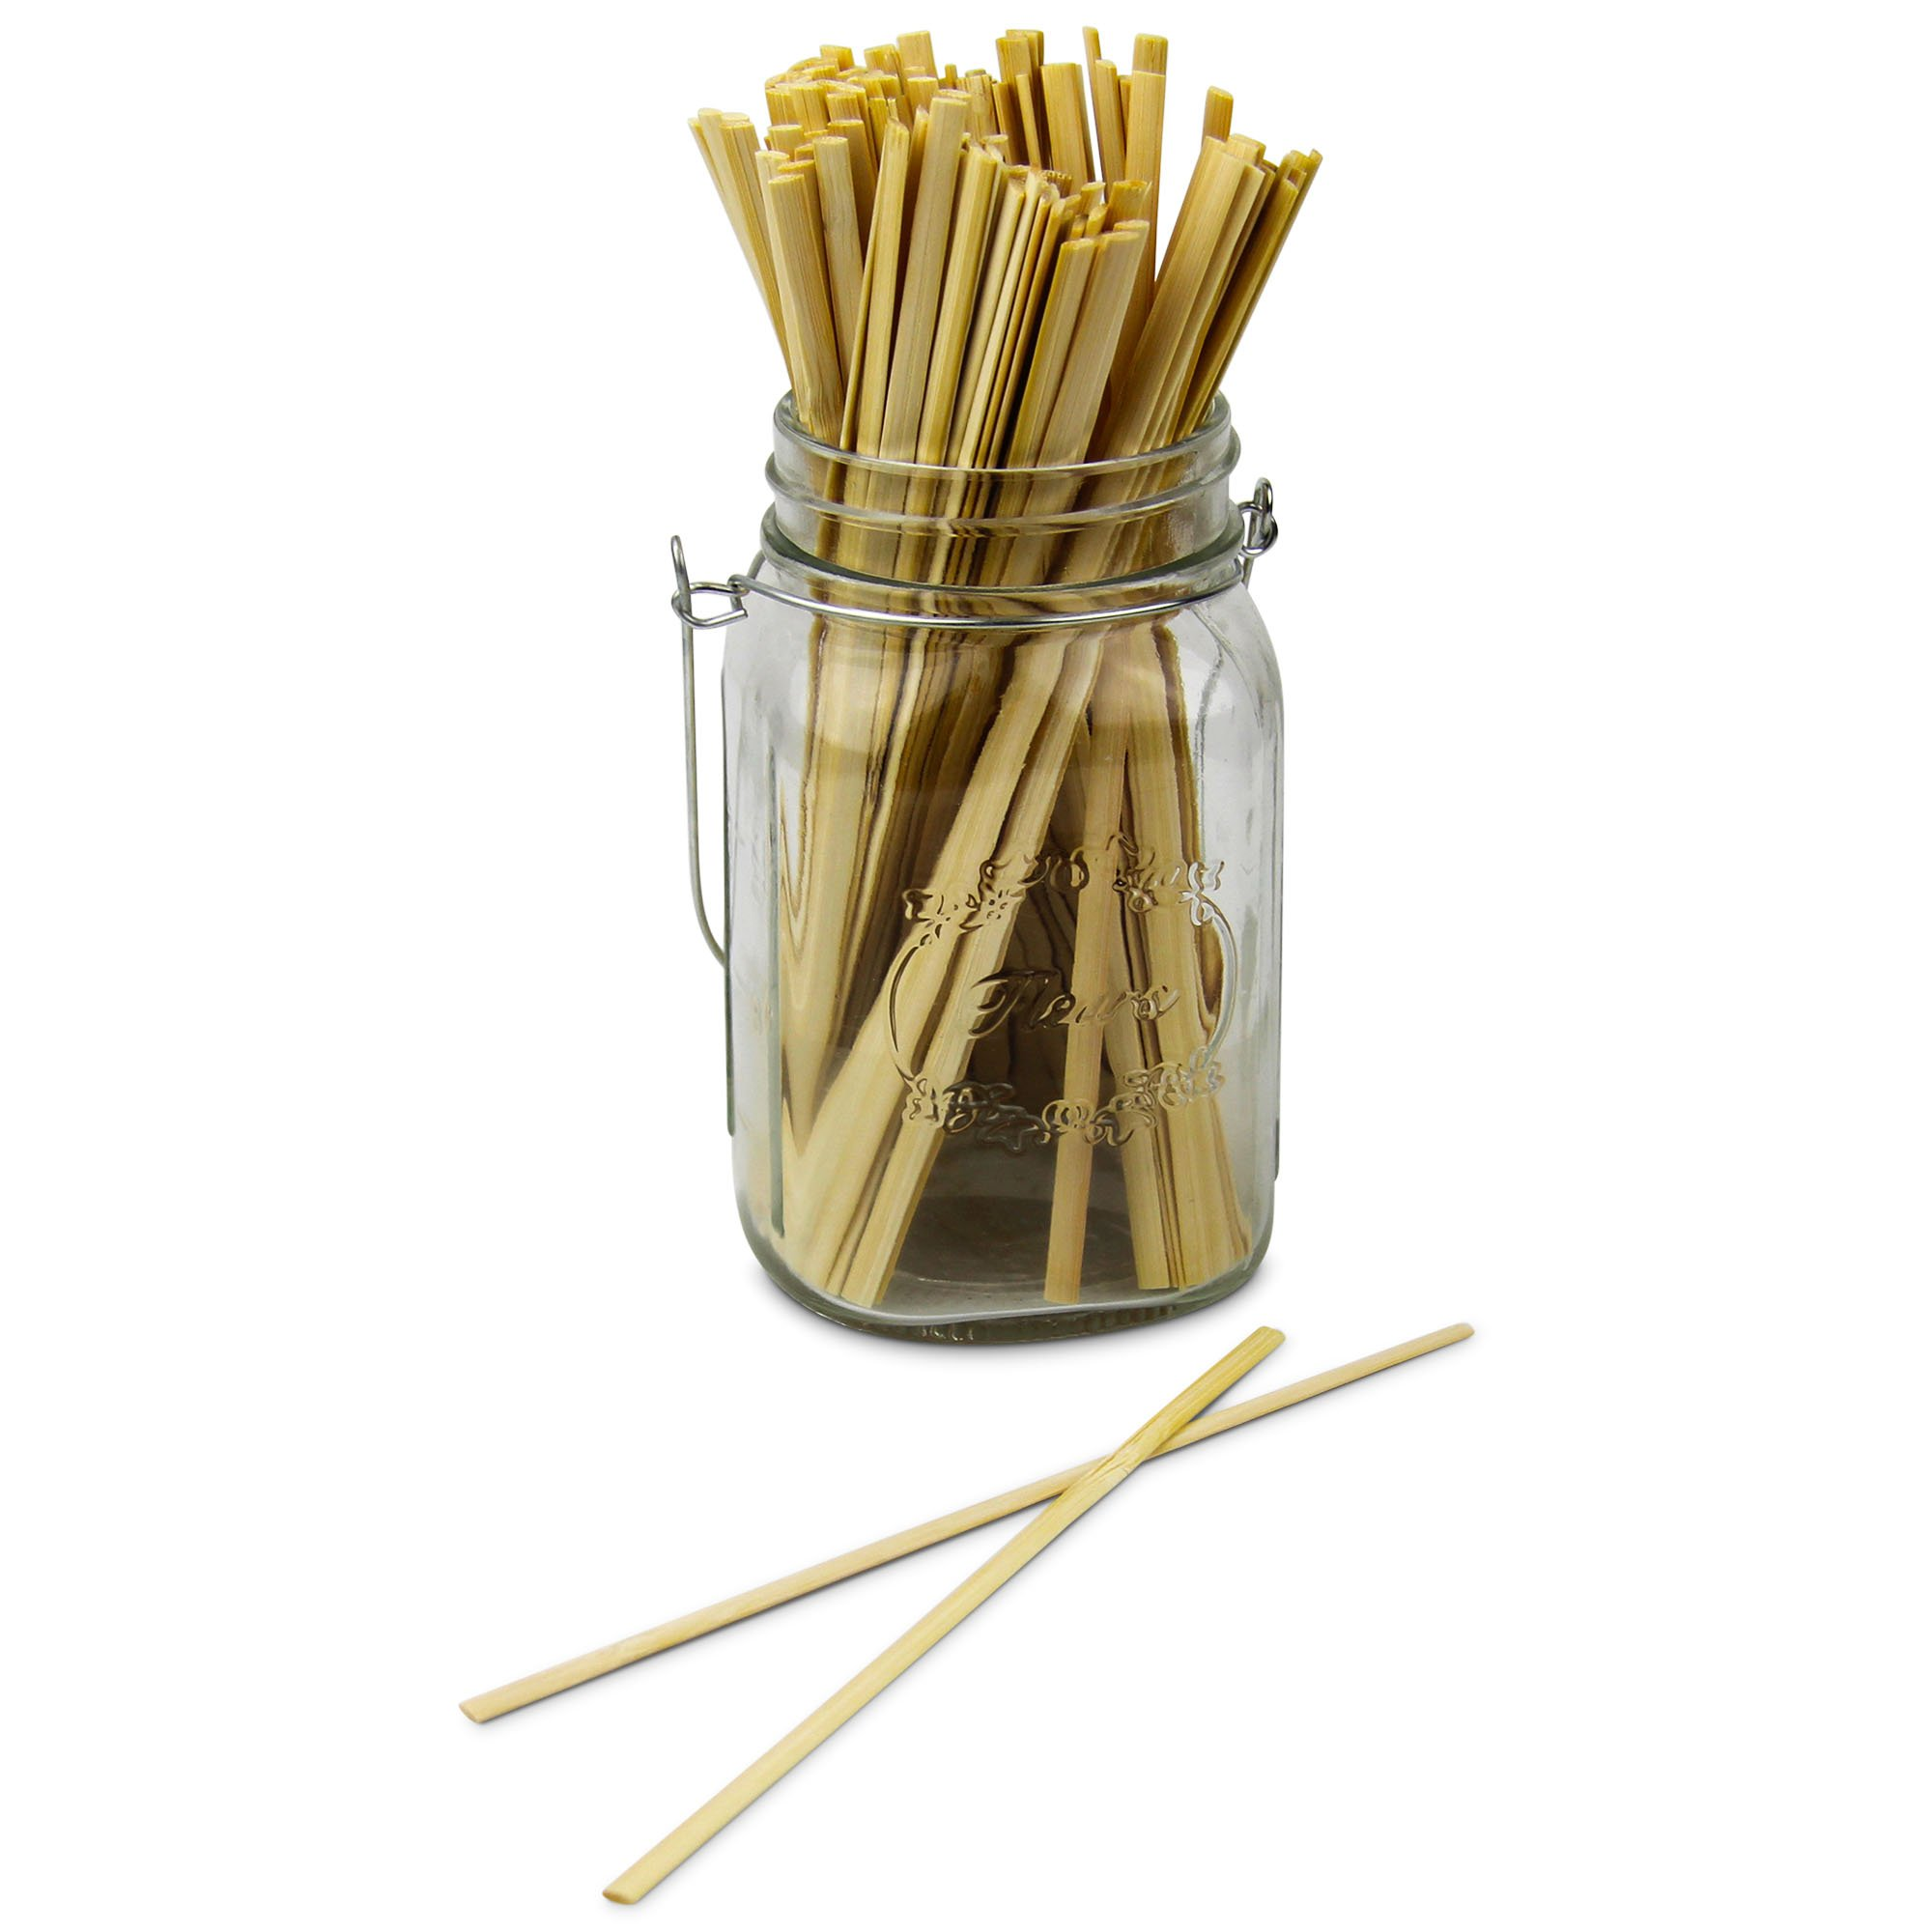 7'' Bamboo Wood Coffee Stir Sticks, Disposable Wooden Tea Drink Cocktail Mix Stirrers, Compostable Eco Friendly For Hot Cold Beverages - 1000 Pack by Fit Meal Prep (Image #3)